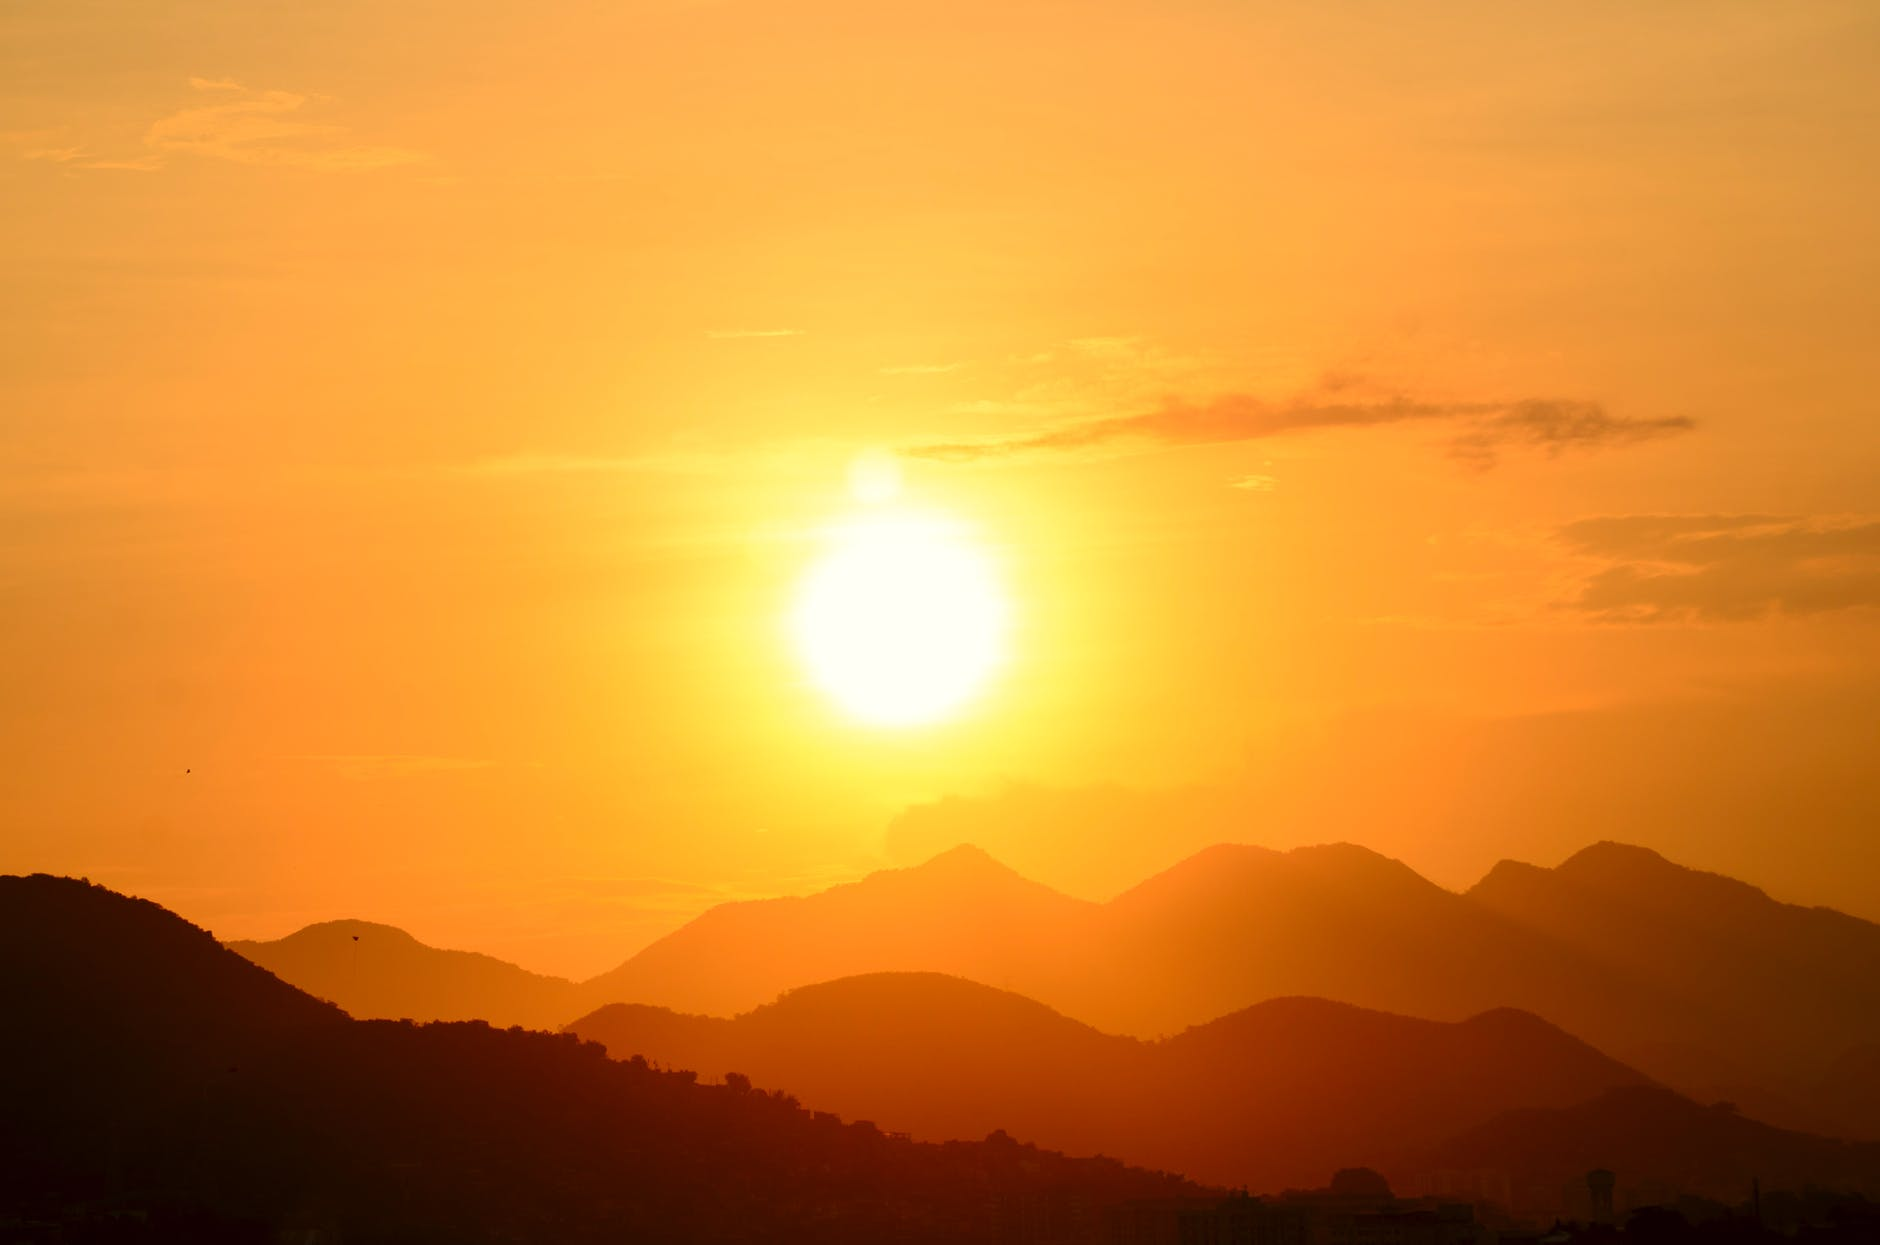 According to astrology, our rising sun reflects how you present your personality in public.